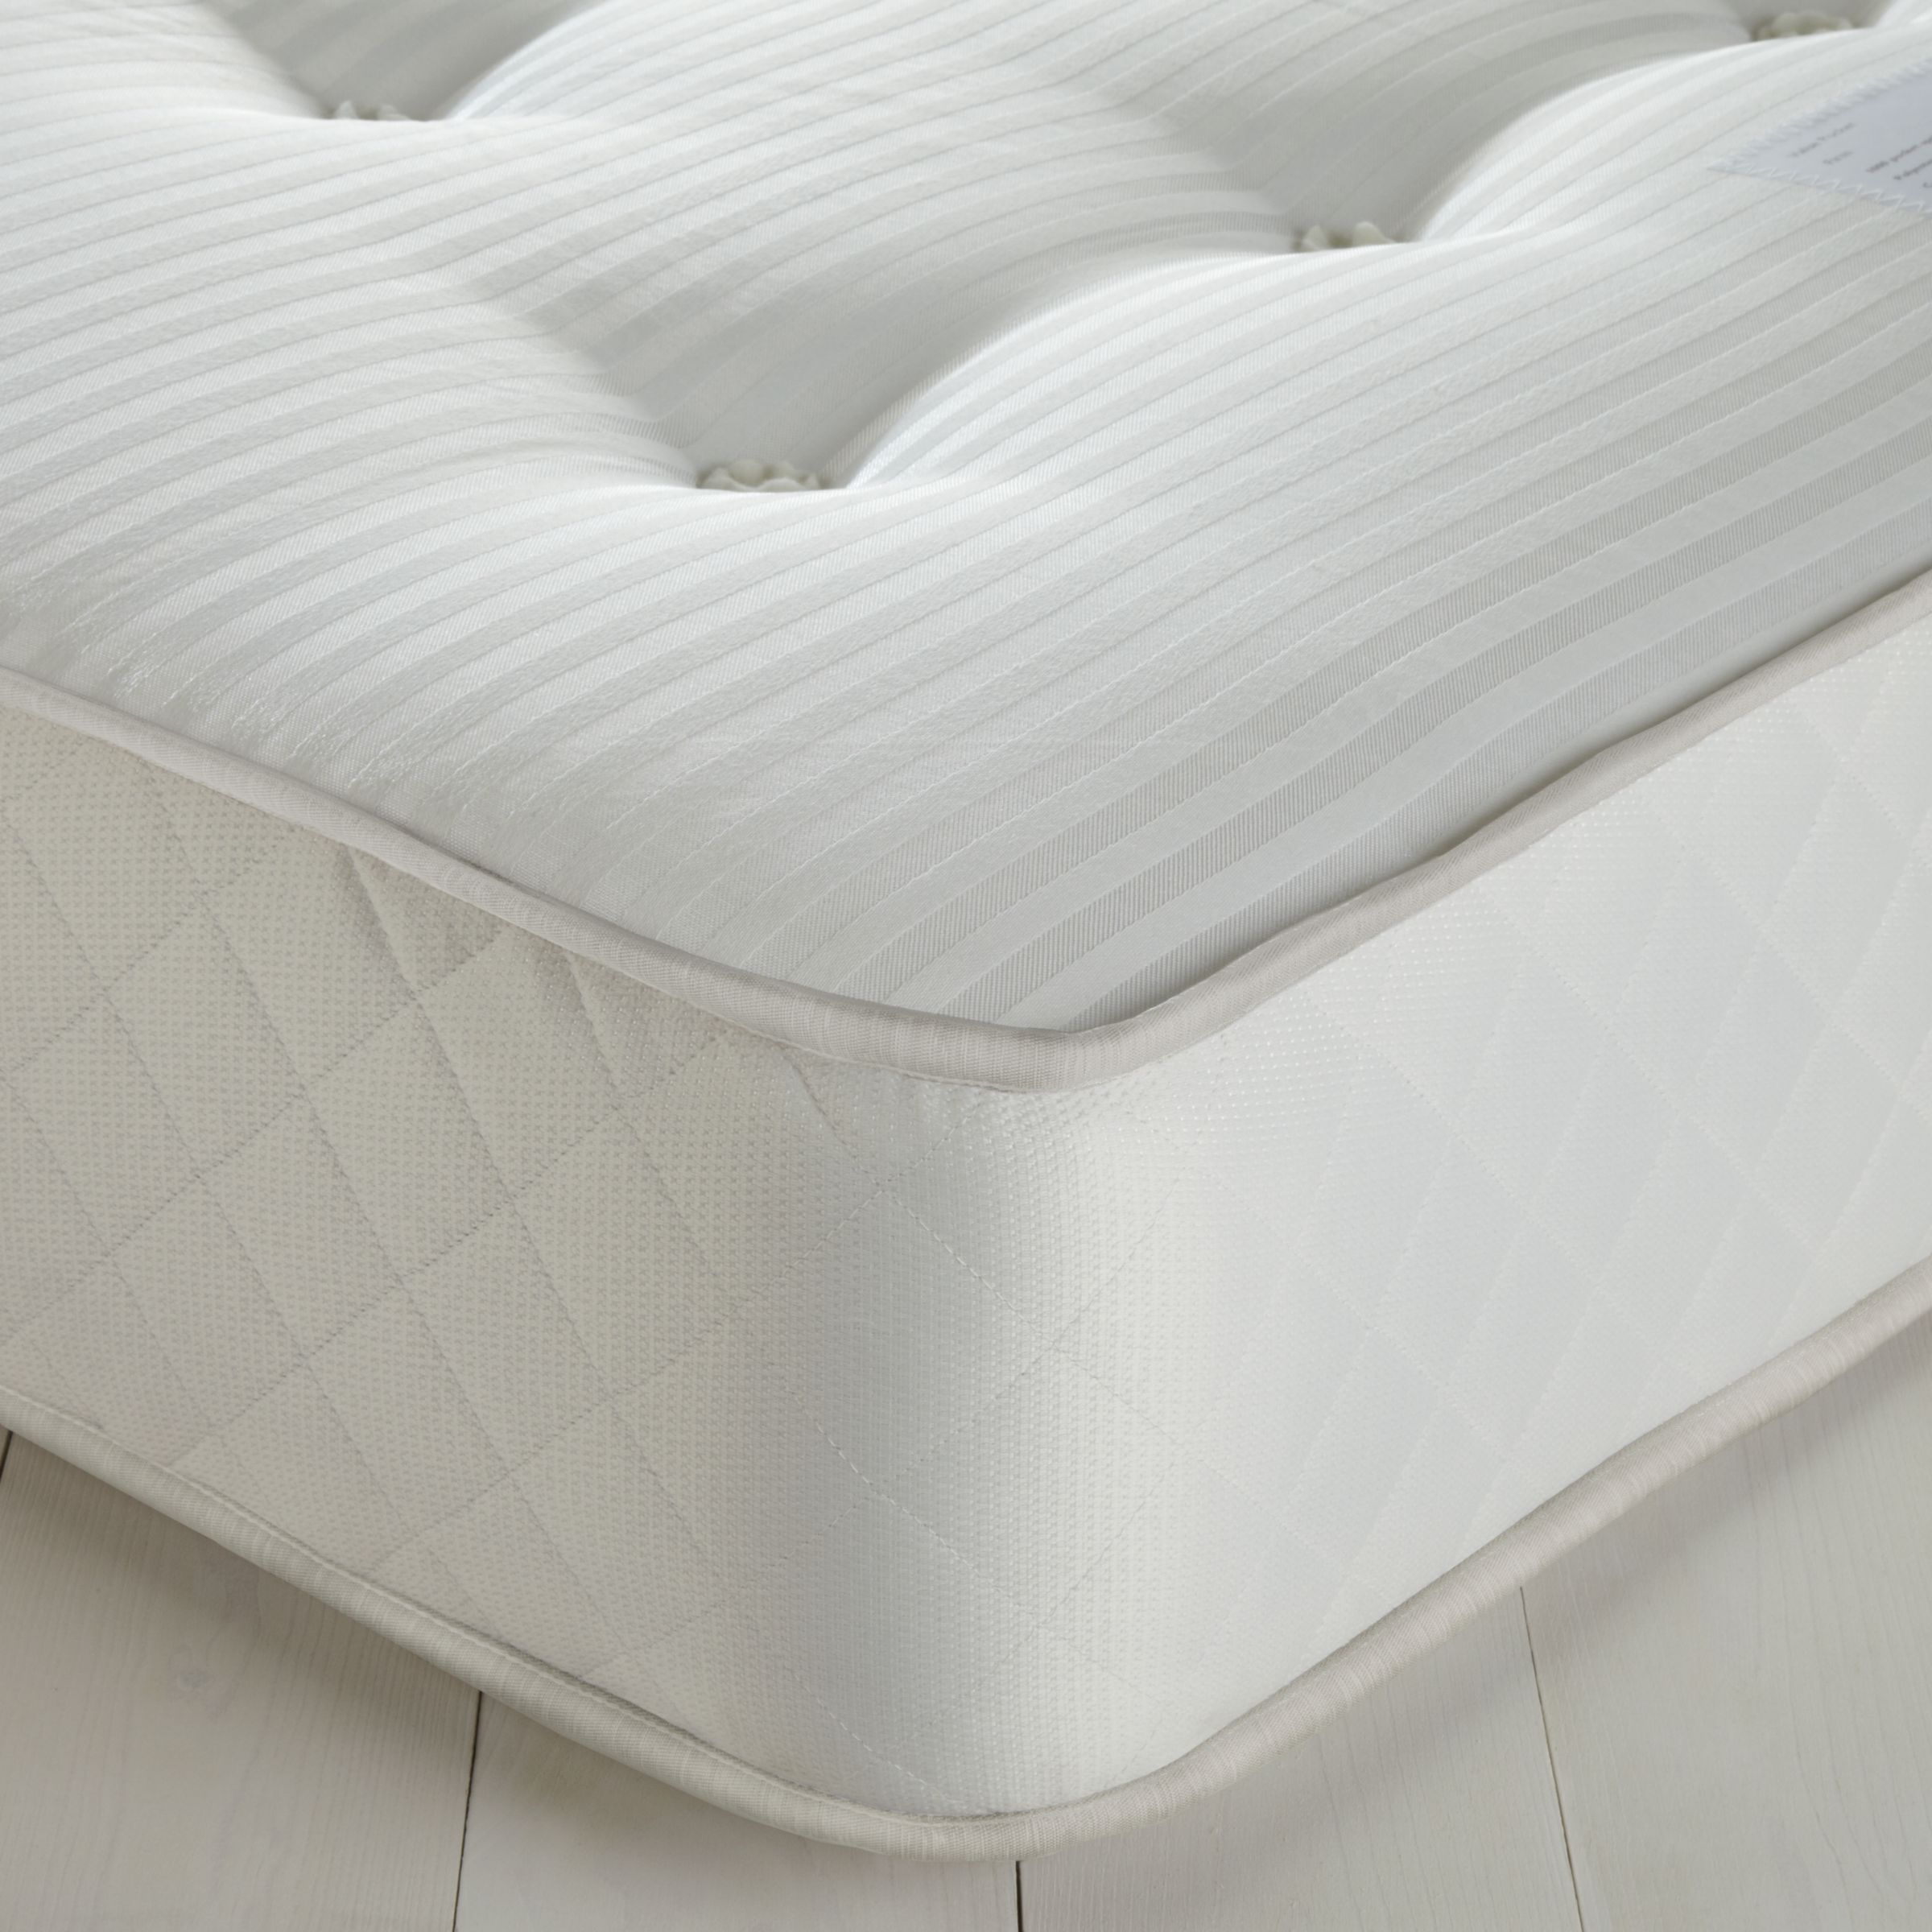 John Lewis The Basics Pocket Firm Mattress, Small Double